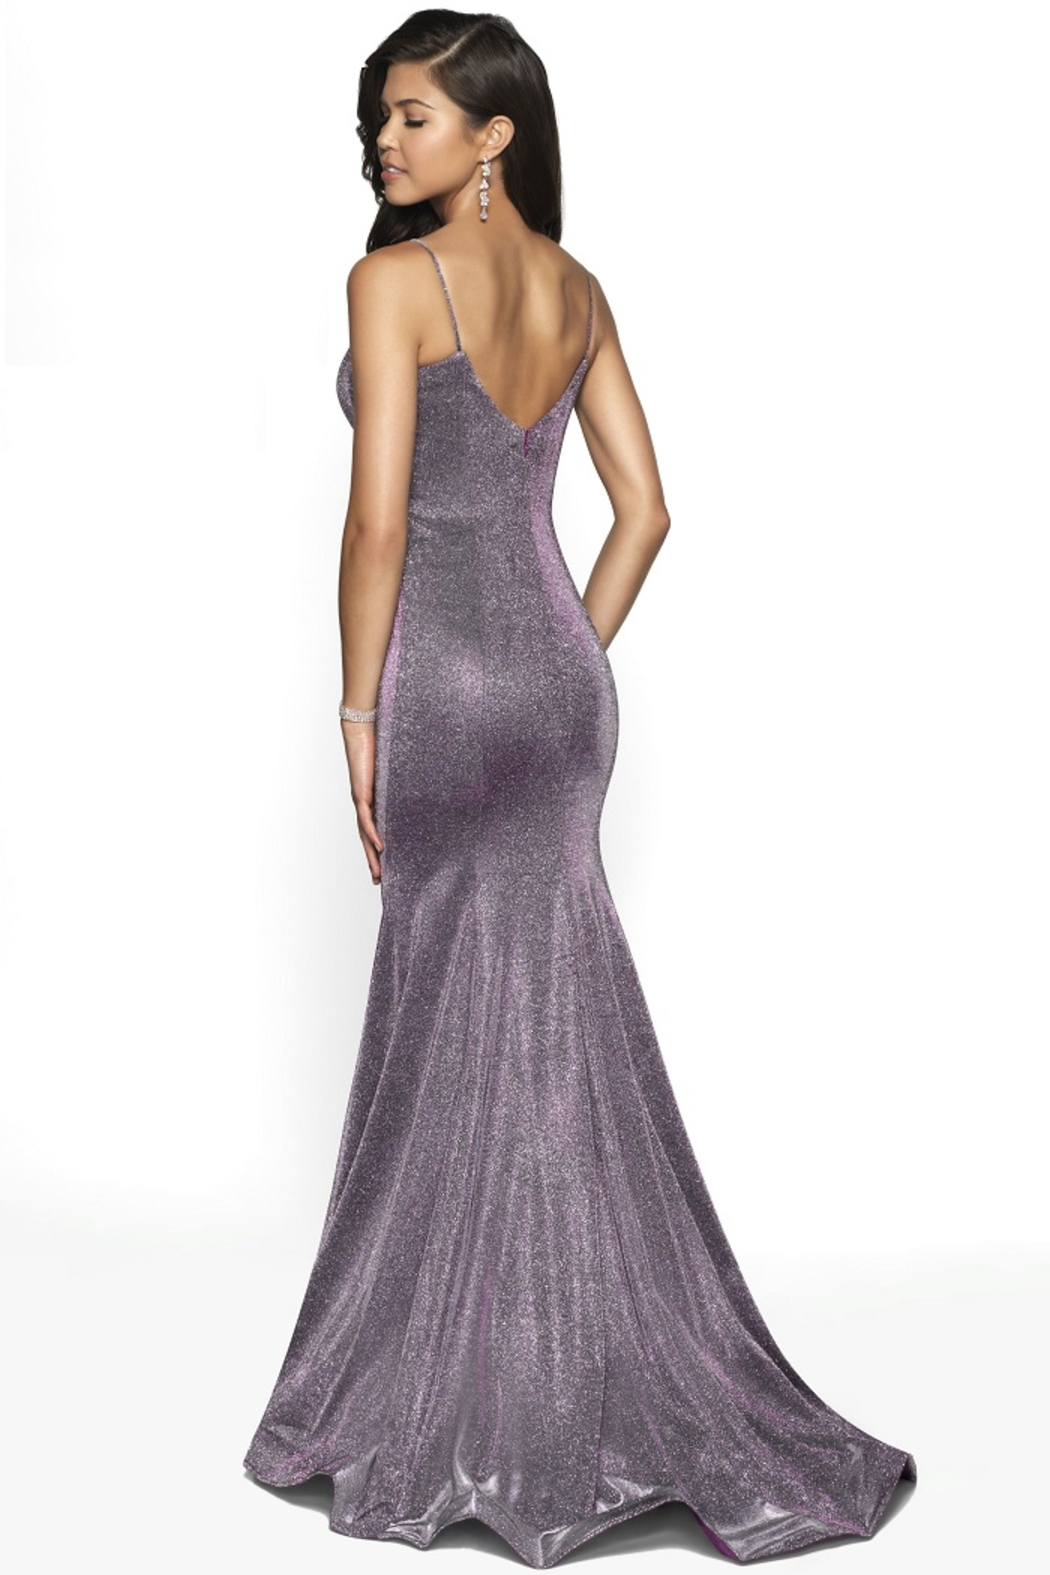 Blush Prom Purple Shimmer Fit & Flare Long Formal Dress - Front Full Image